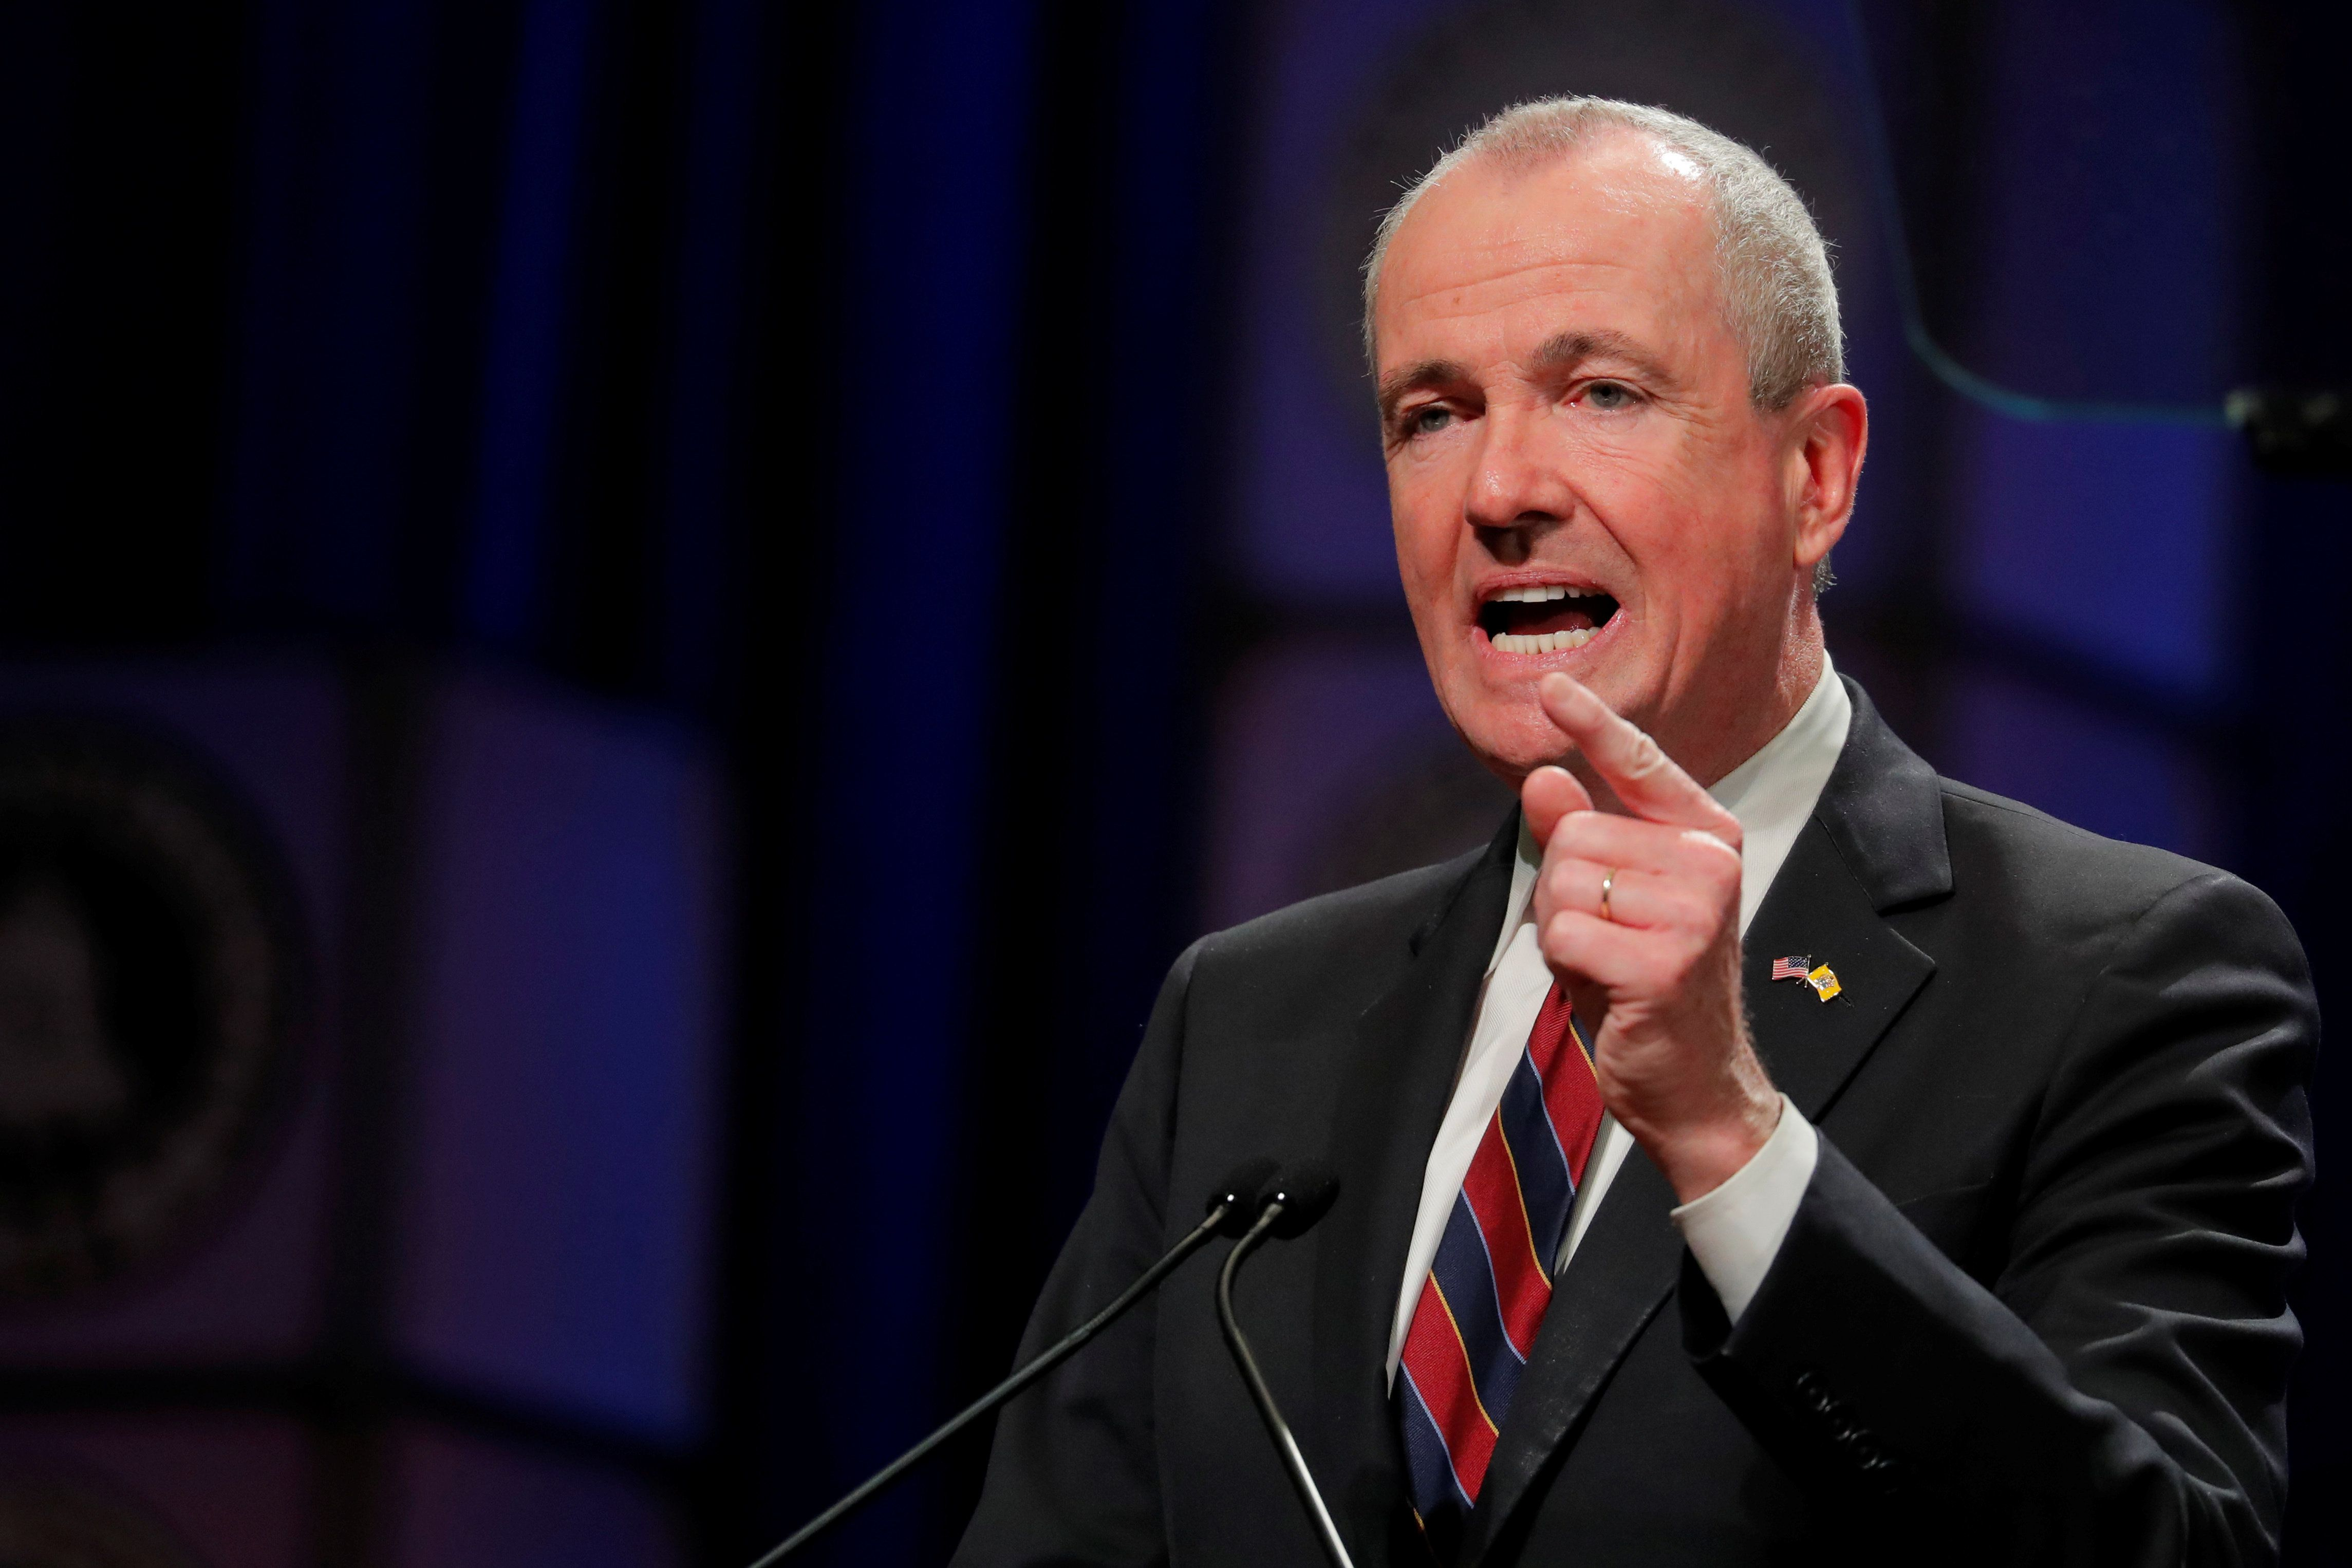 New Jersey Governor Calls On Sheriff To Resign After Racist Remarks Caught On